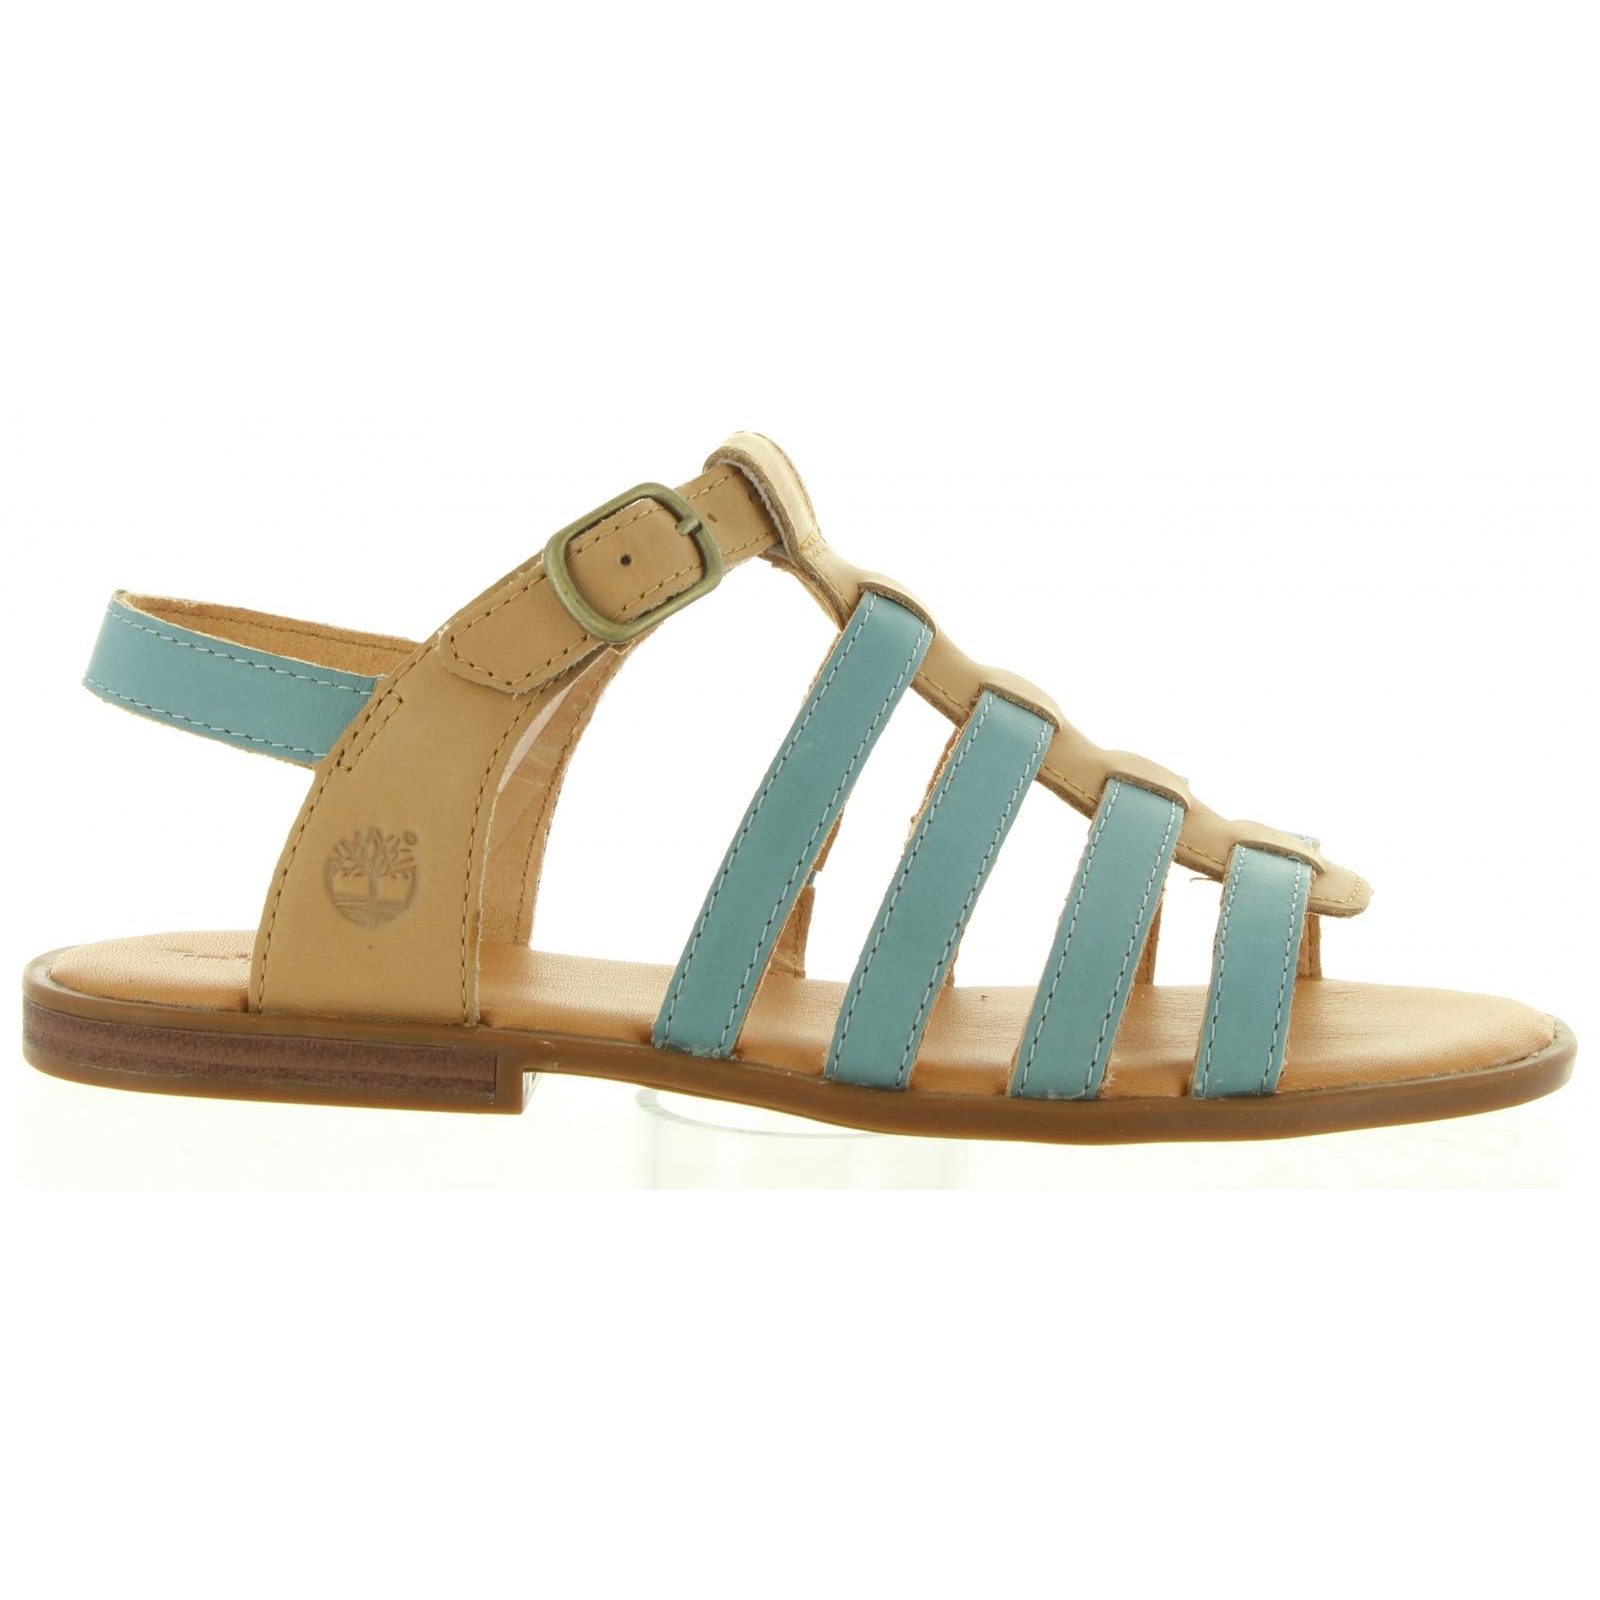 Sandals-girl-TIMBERLAND-A1G2D GIRLS-STONE BLUE Size 33 b85c7ea92a72